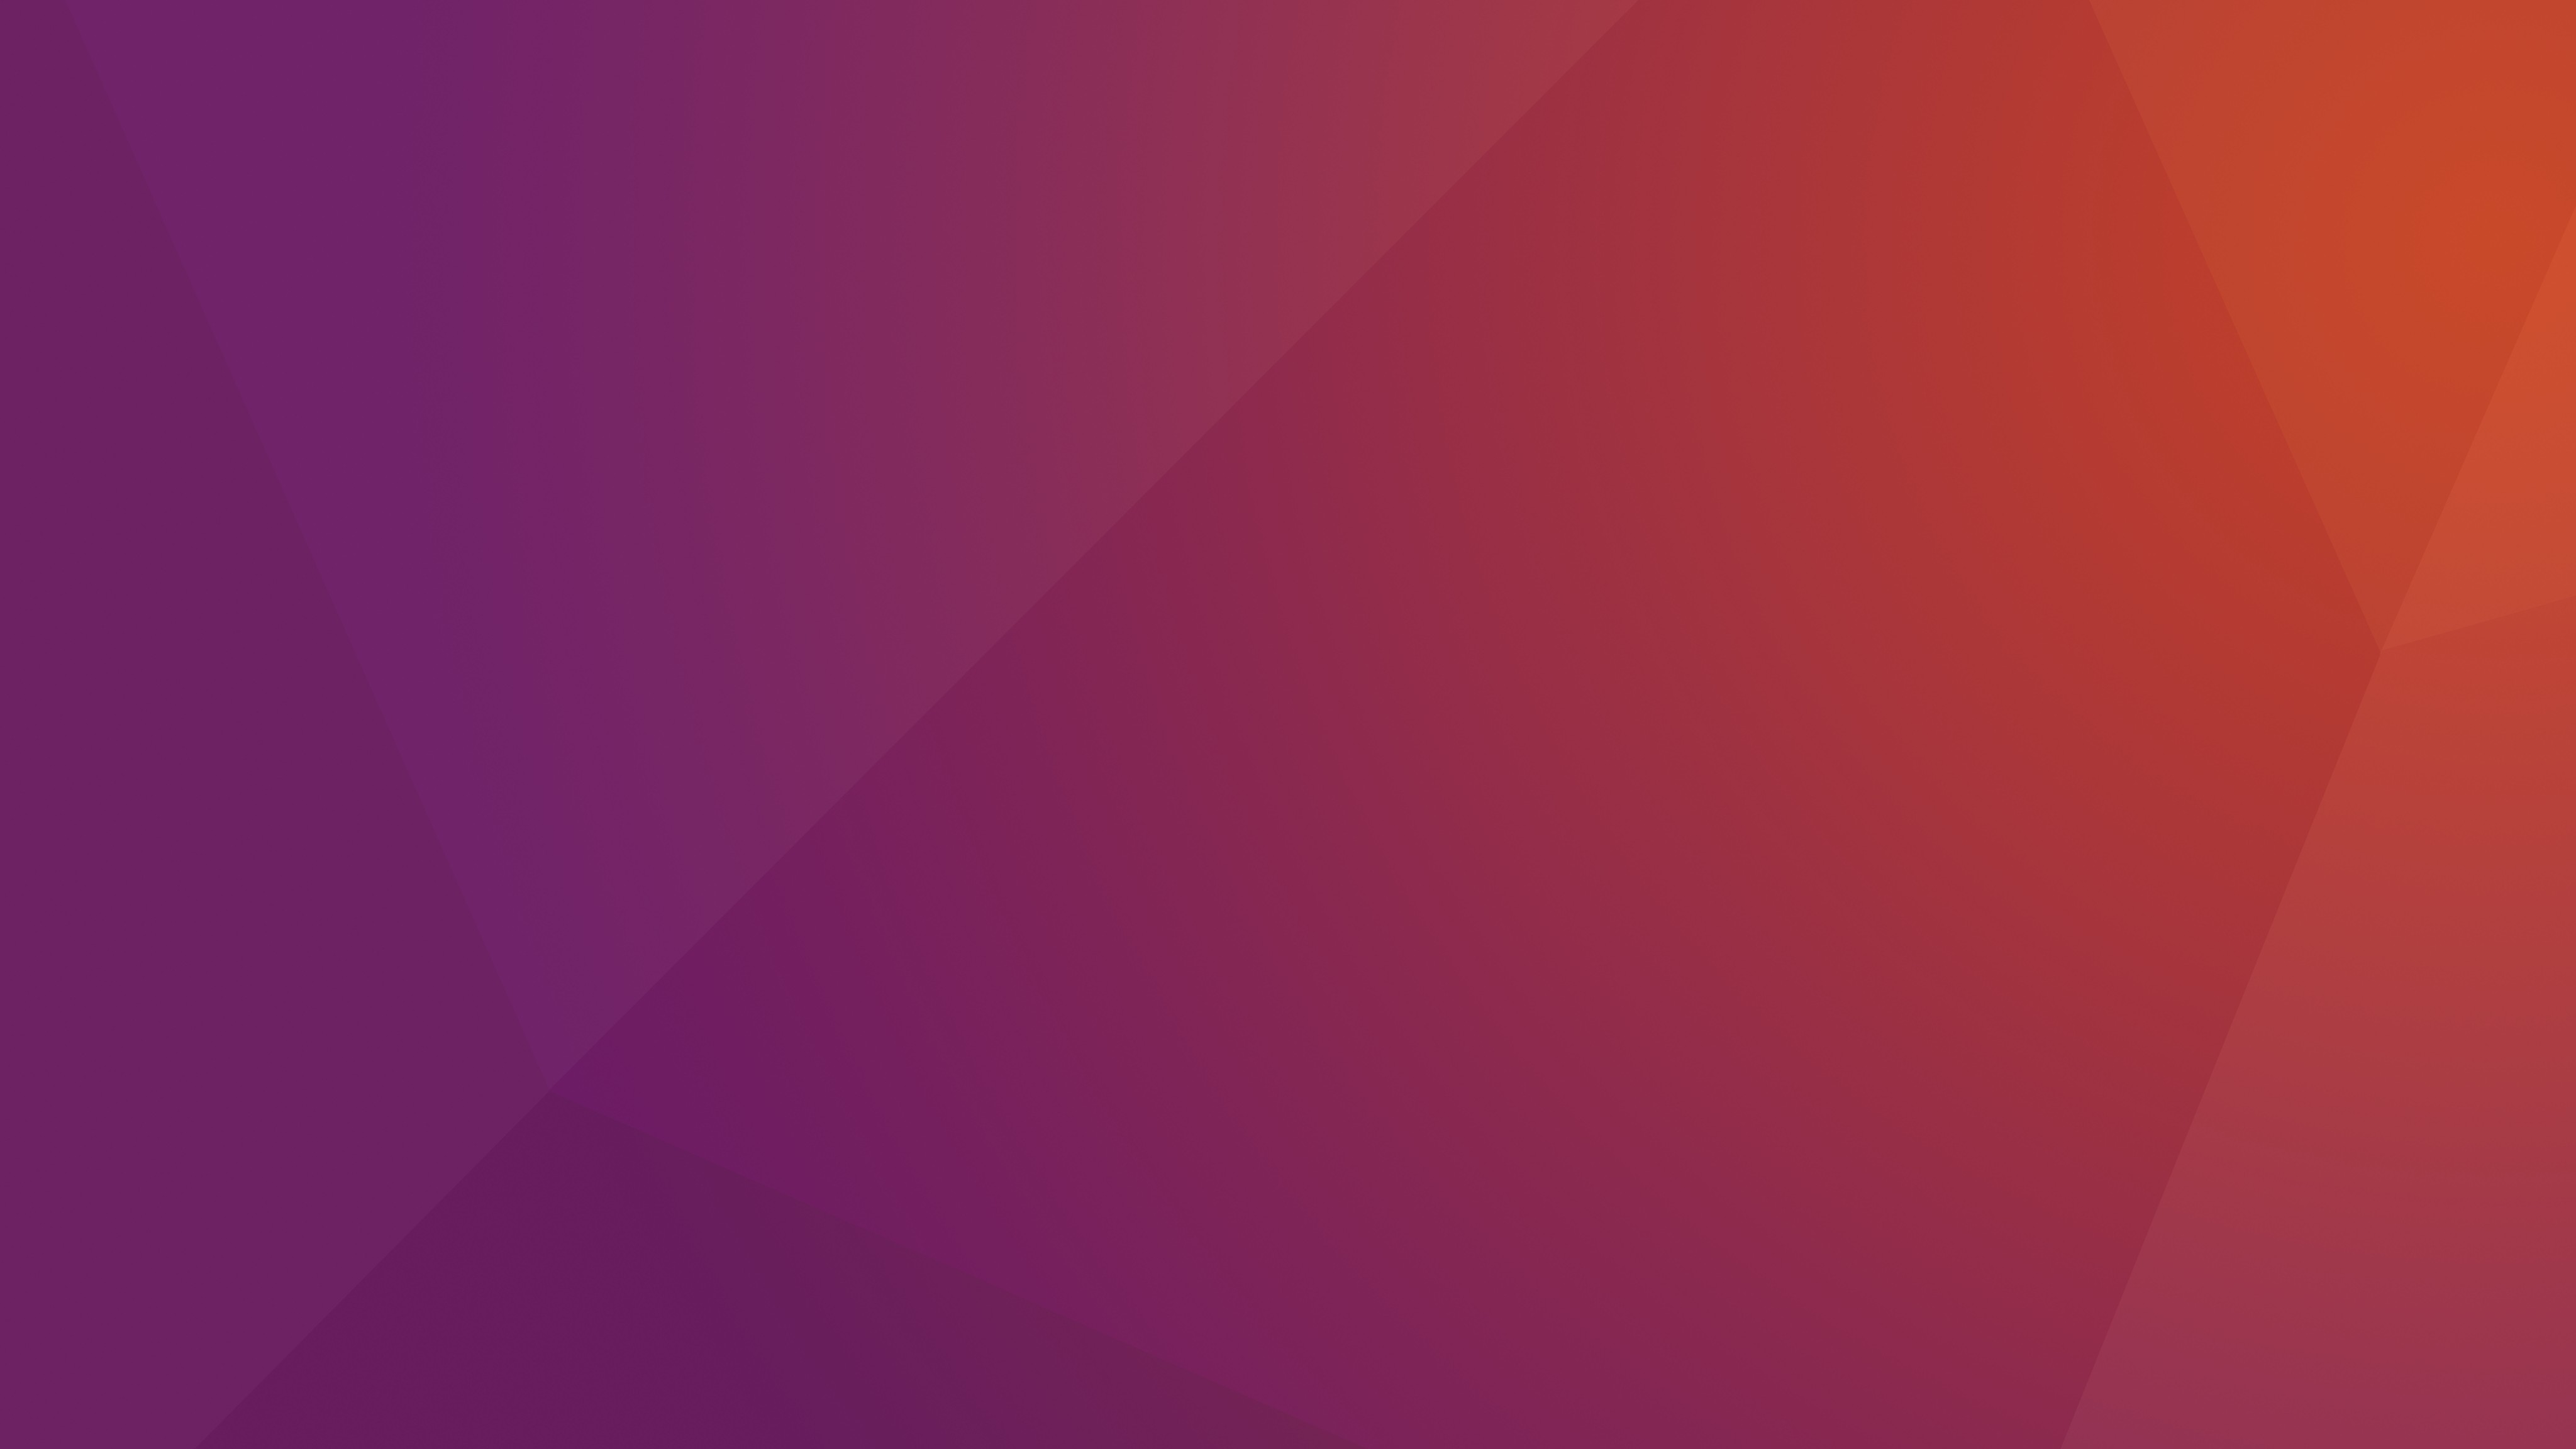 Ubuntu Wallpaper For Phone Auto Design Tech 4096x2304